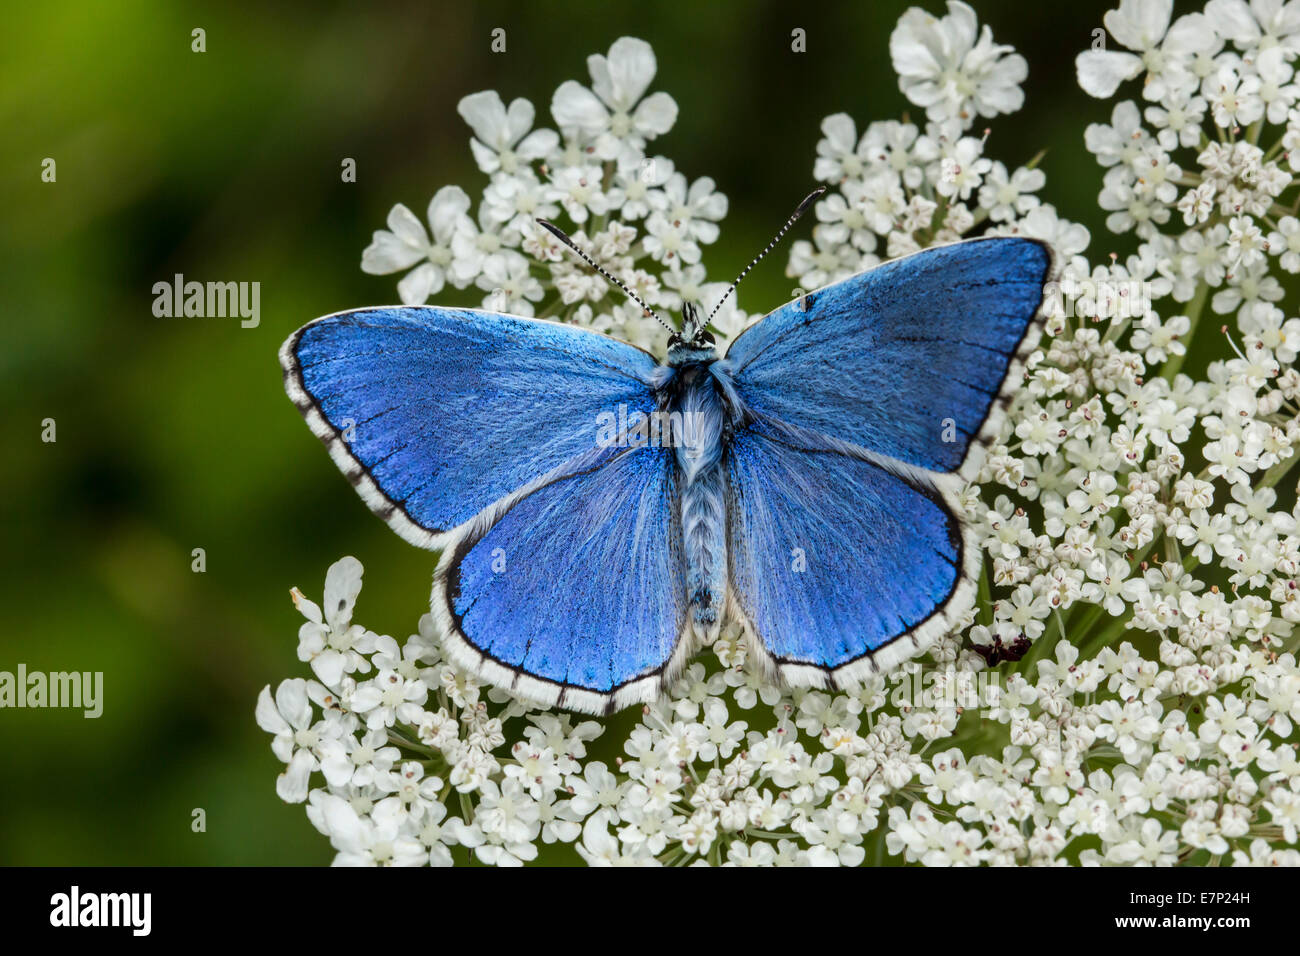 Animal, Insect, Butterfly, Lepidoptera, Arthropoda, Blue, Polyommatus bellargus, Flower, Adonis Blue, White - Stock Image